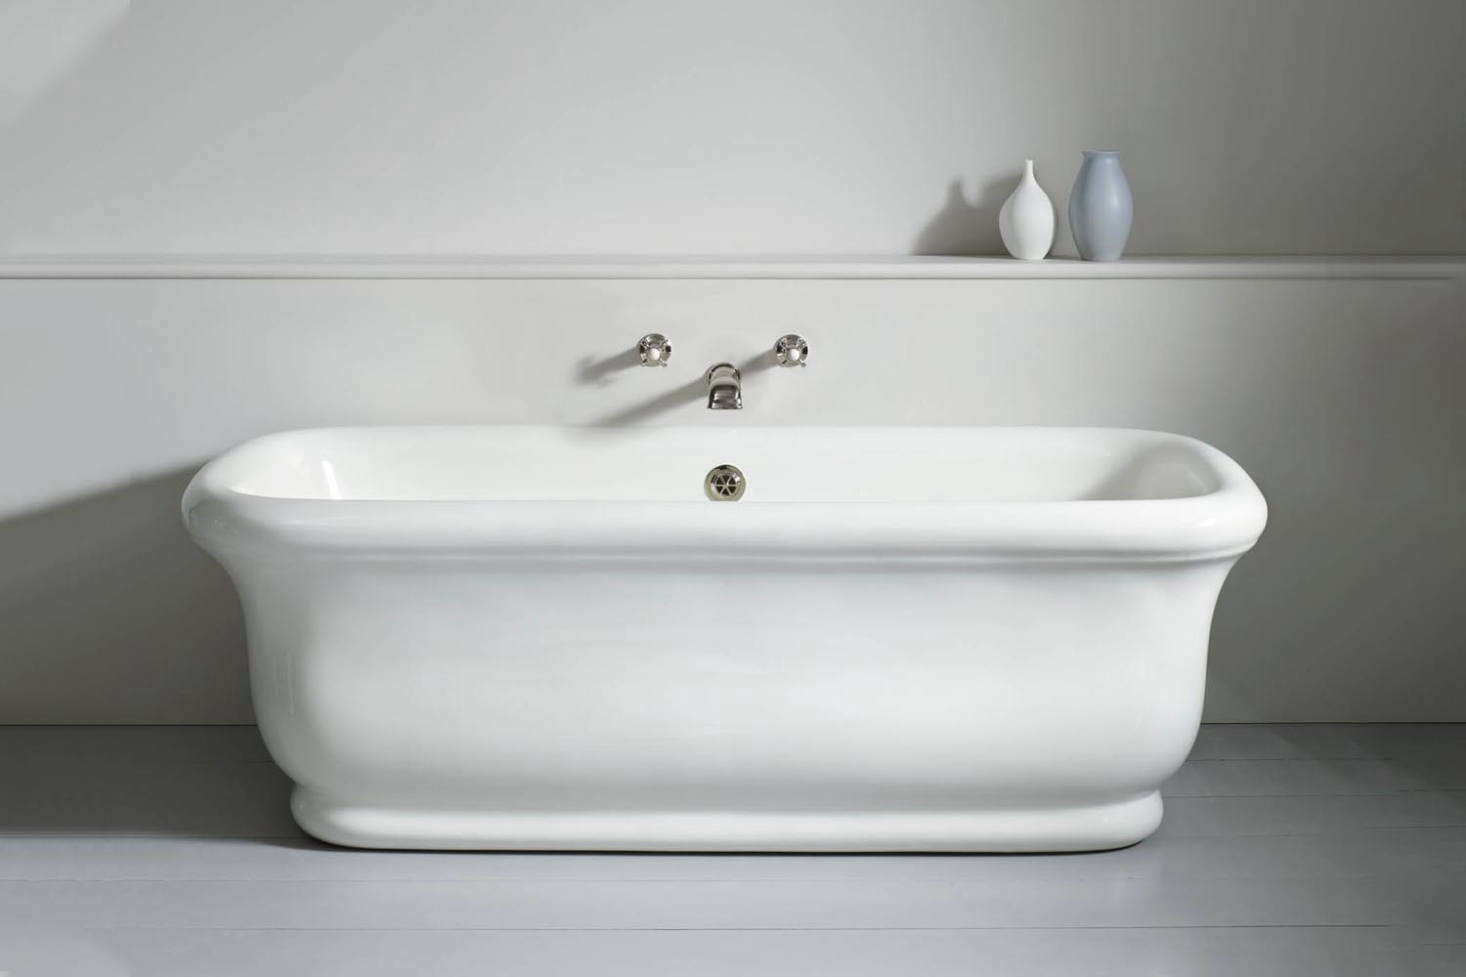 A similar style tub is from The Water Monopoly: the Paris Bath Without Feet, a reproduction of an early th Century French fireclay bath made in England; £5,6 at The Water Monopoly.